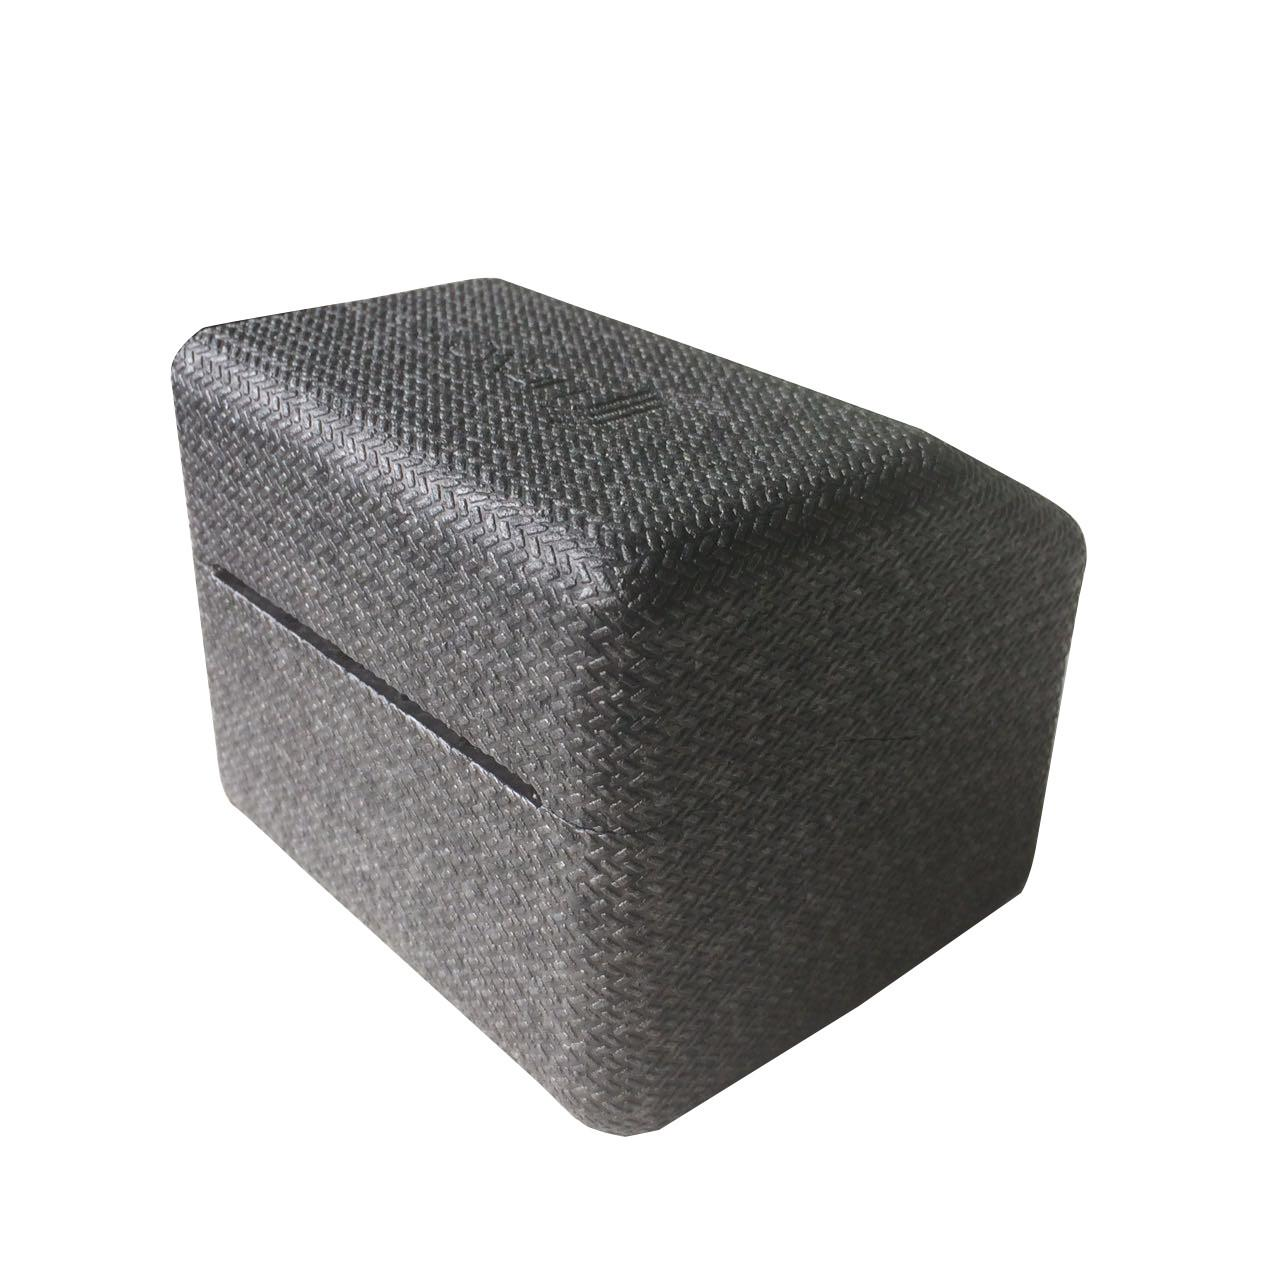 textured premium EPP cushion case for watch from HOMI EPP factory Manufactures